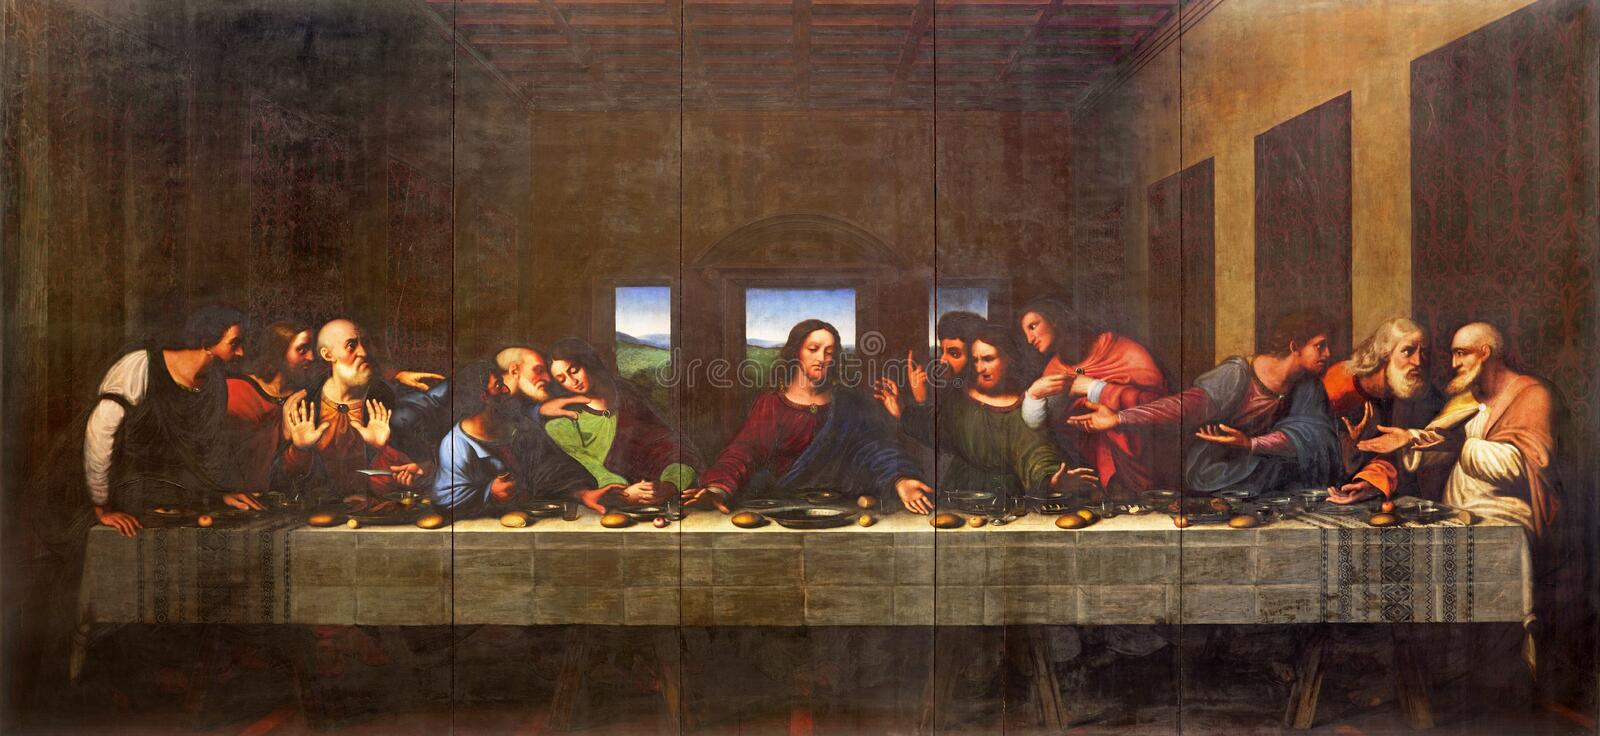 TURIN, ITALY - MARCH 13, 2017: The painting of Last Supper in Duomo after Leonardo da Vinci by Vercellese Luigi Cagna 1836 royalty free stock photography